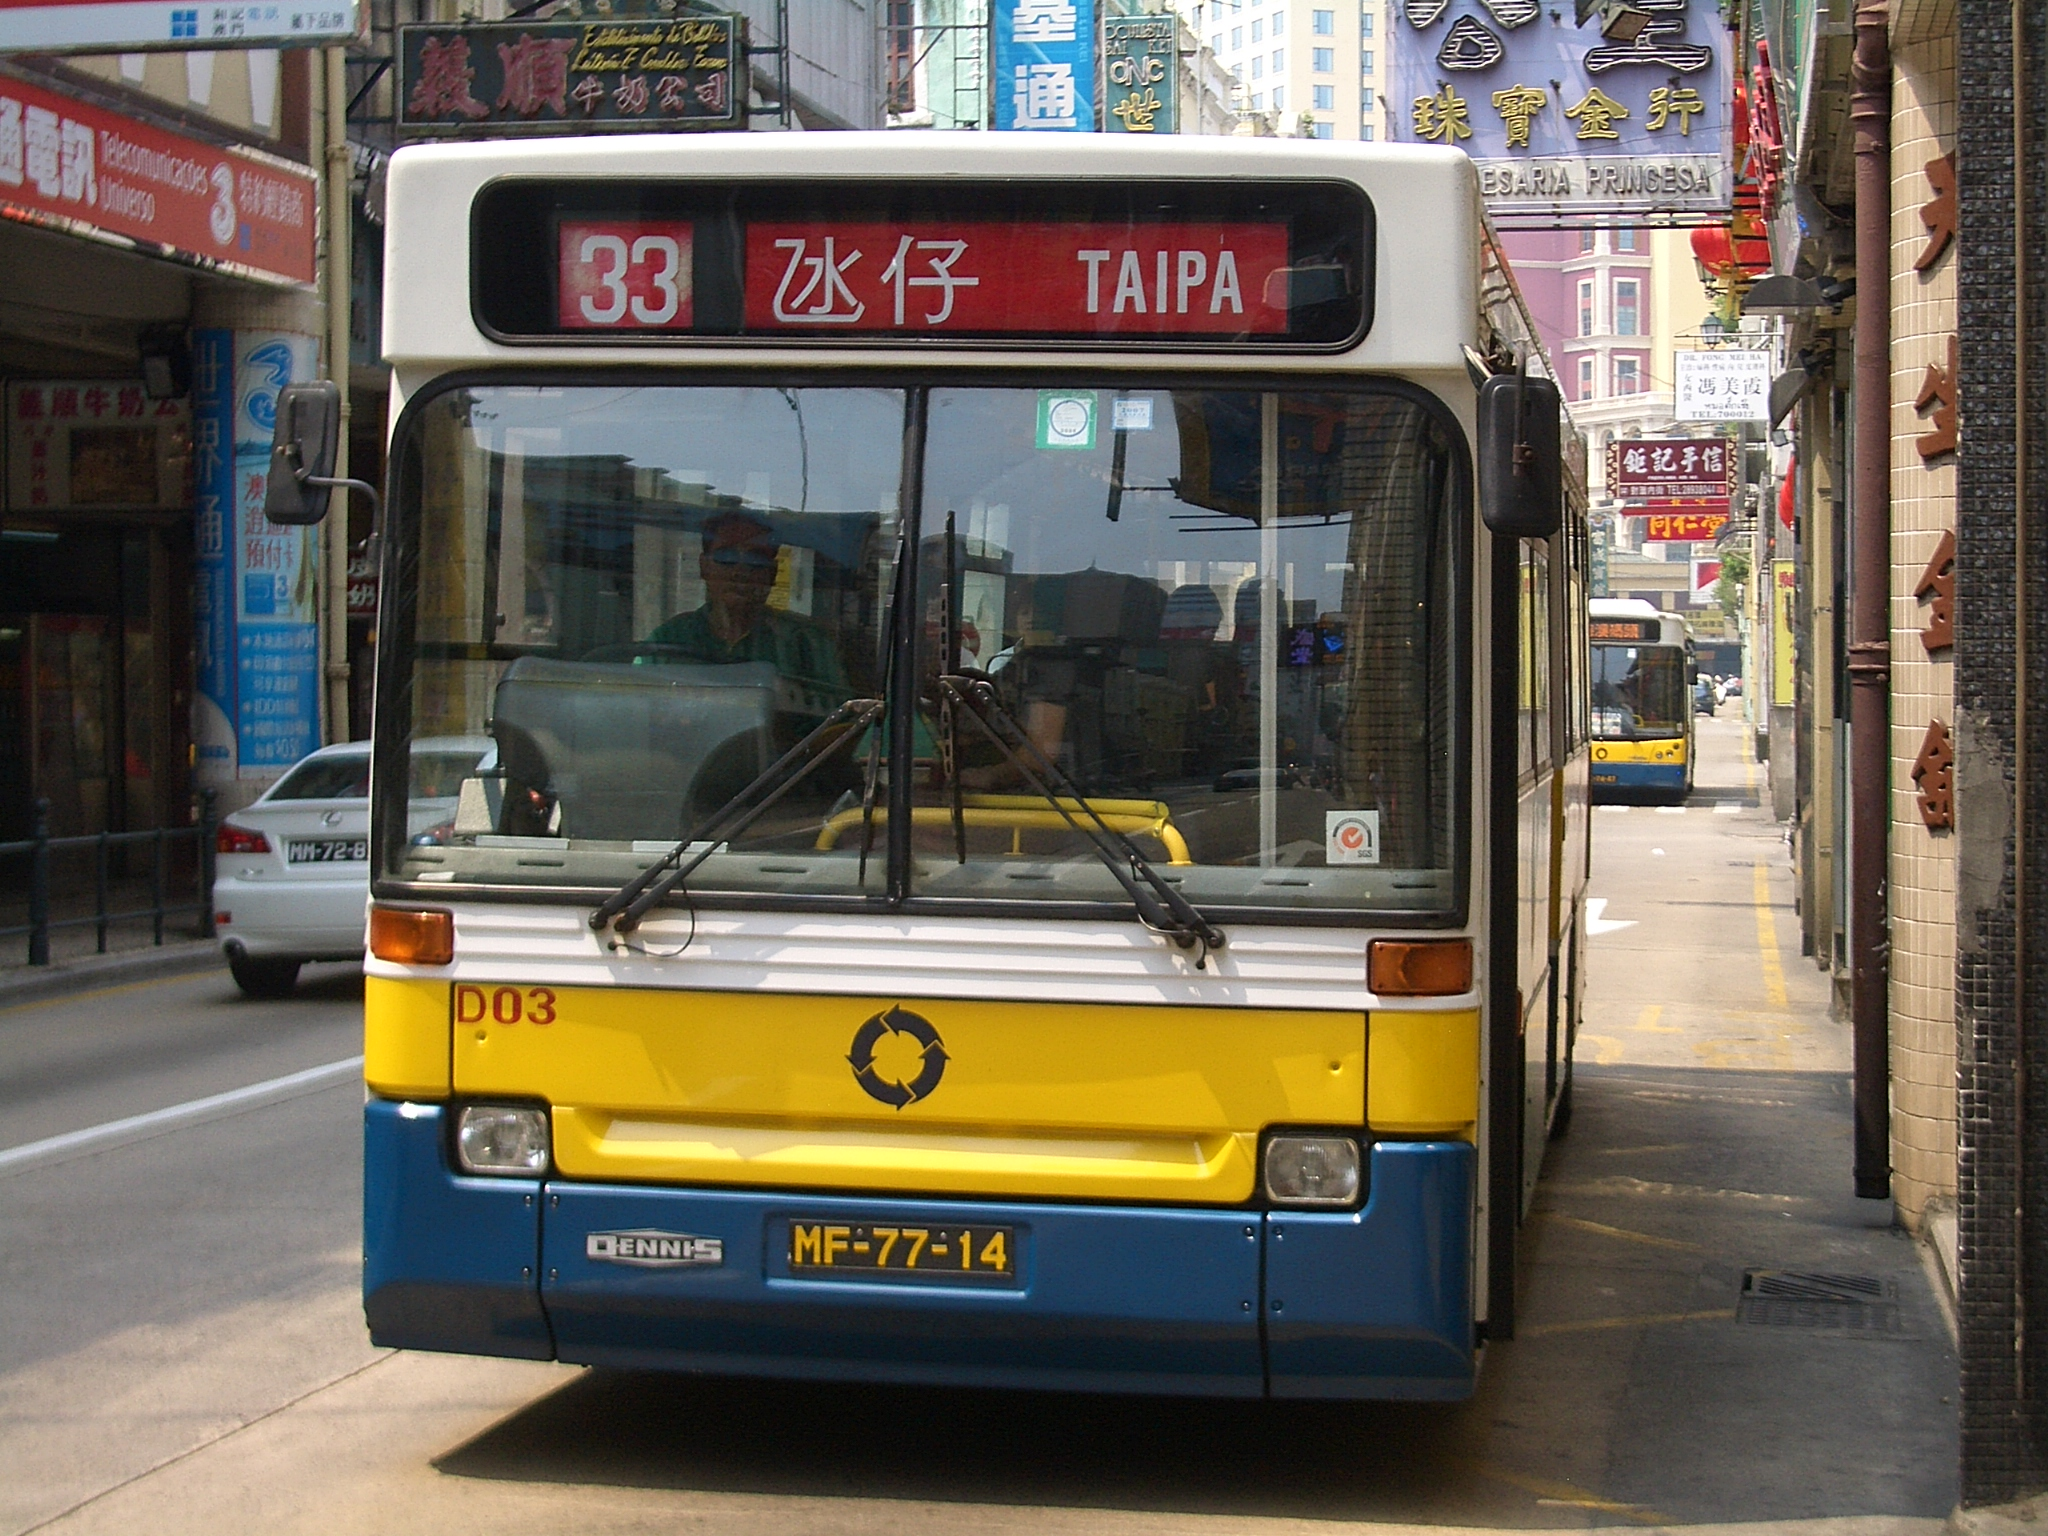 File:Macau-bus-1032.jpg